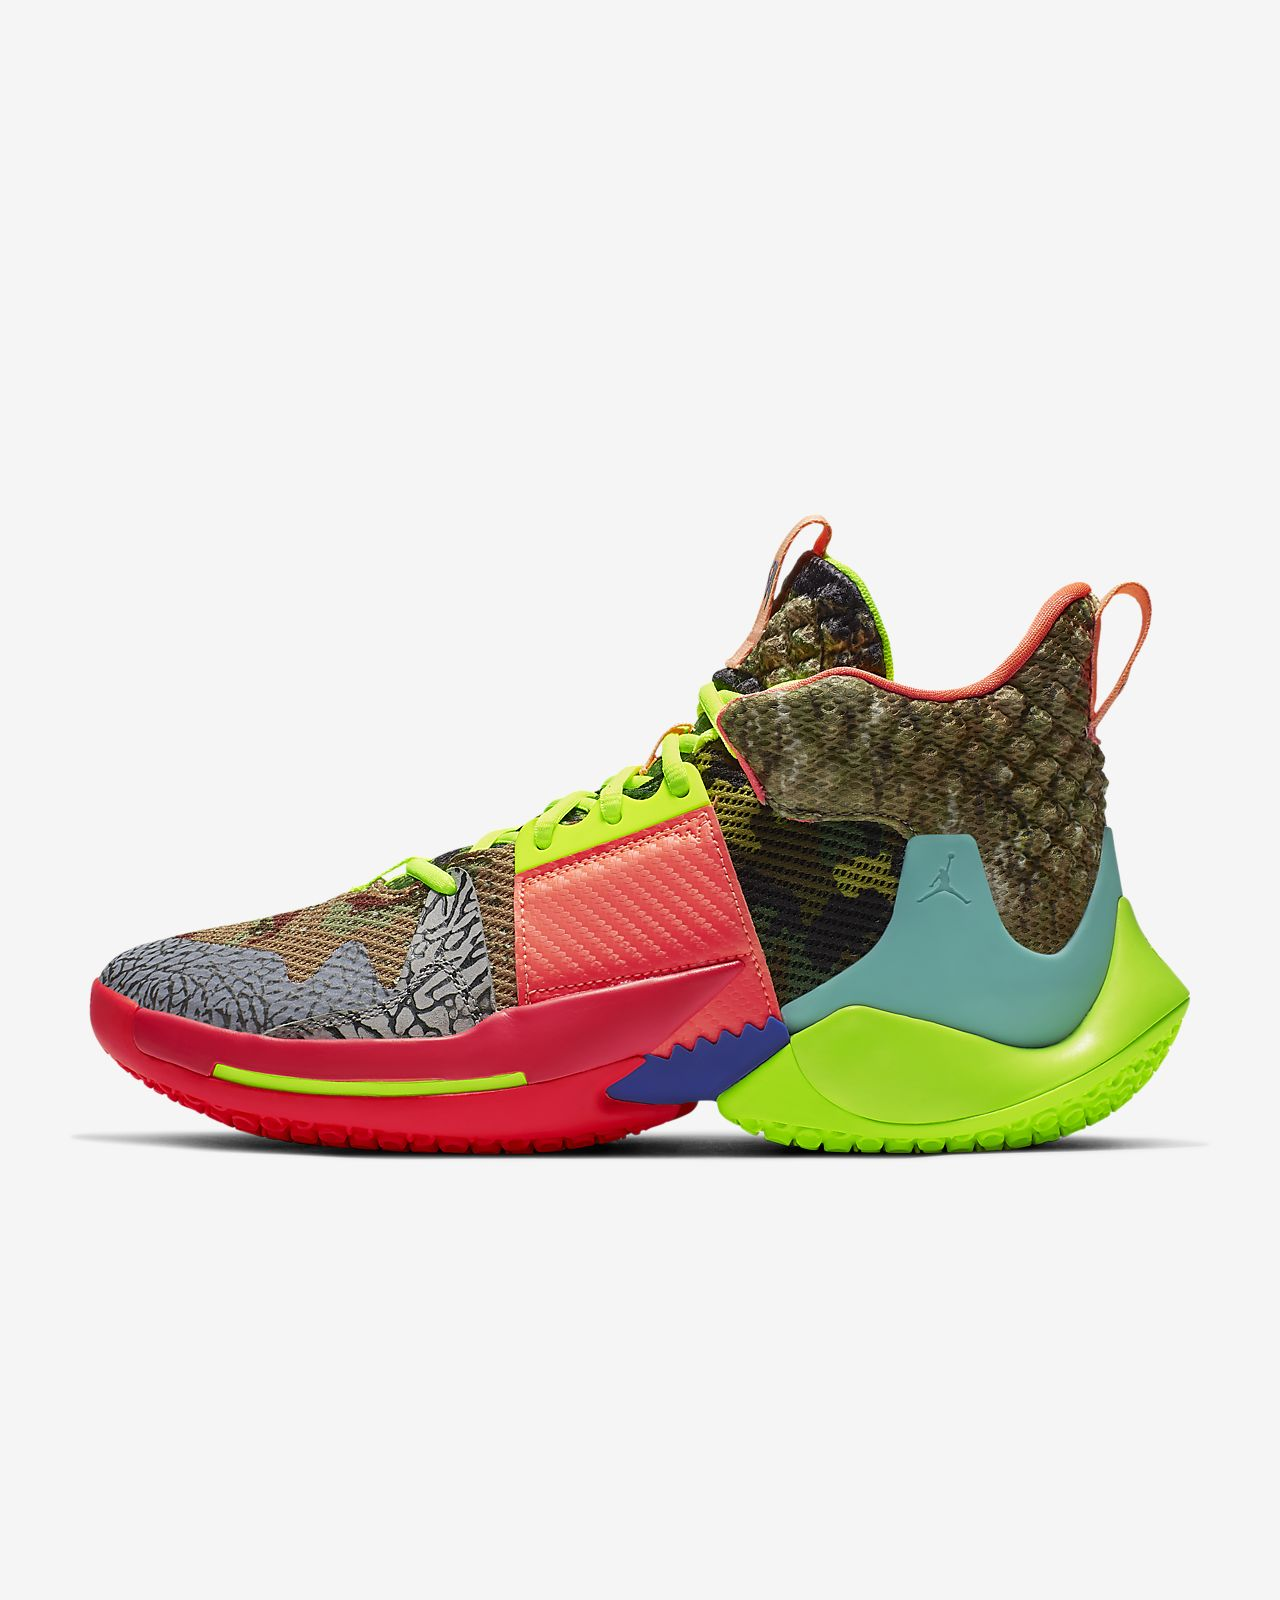 d11f28020b Jordan 'Why Not?' Zer0.2 SP Basketball Shoe